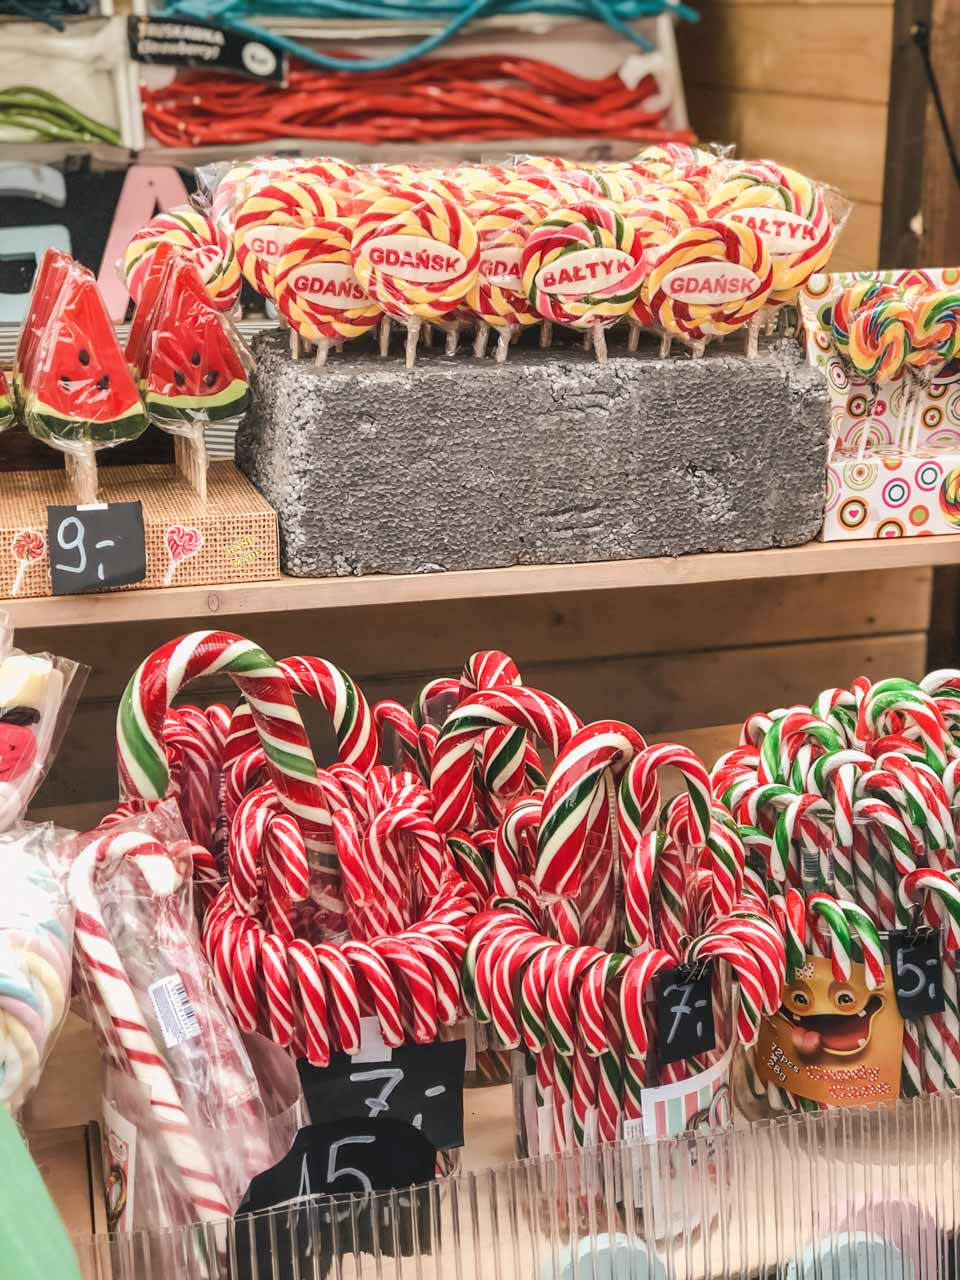 Candy canes and lollipops